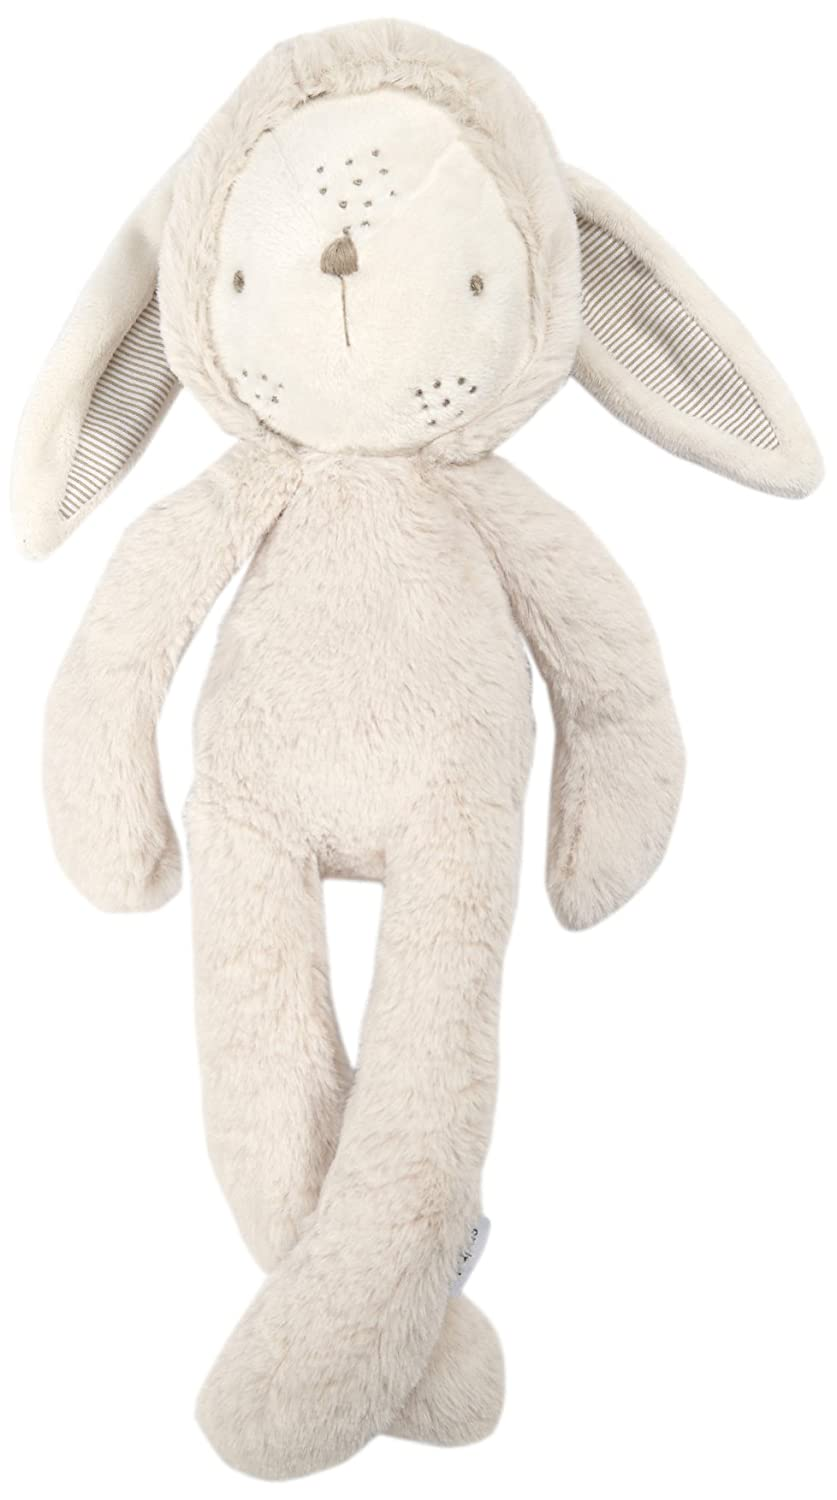 Mamas & Papas My First Bunny Soft Toy, Large, Neutral 757044001